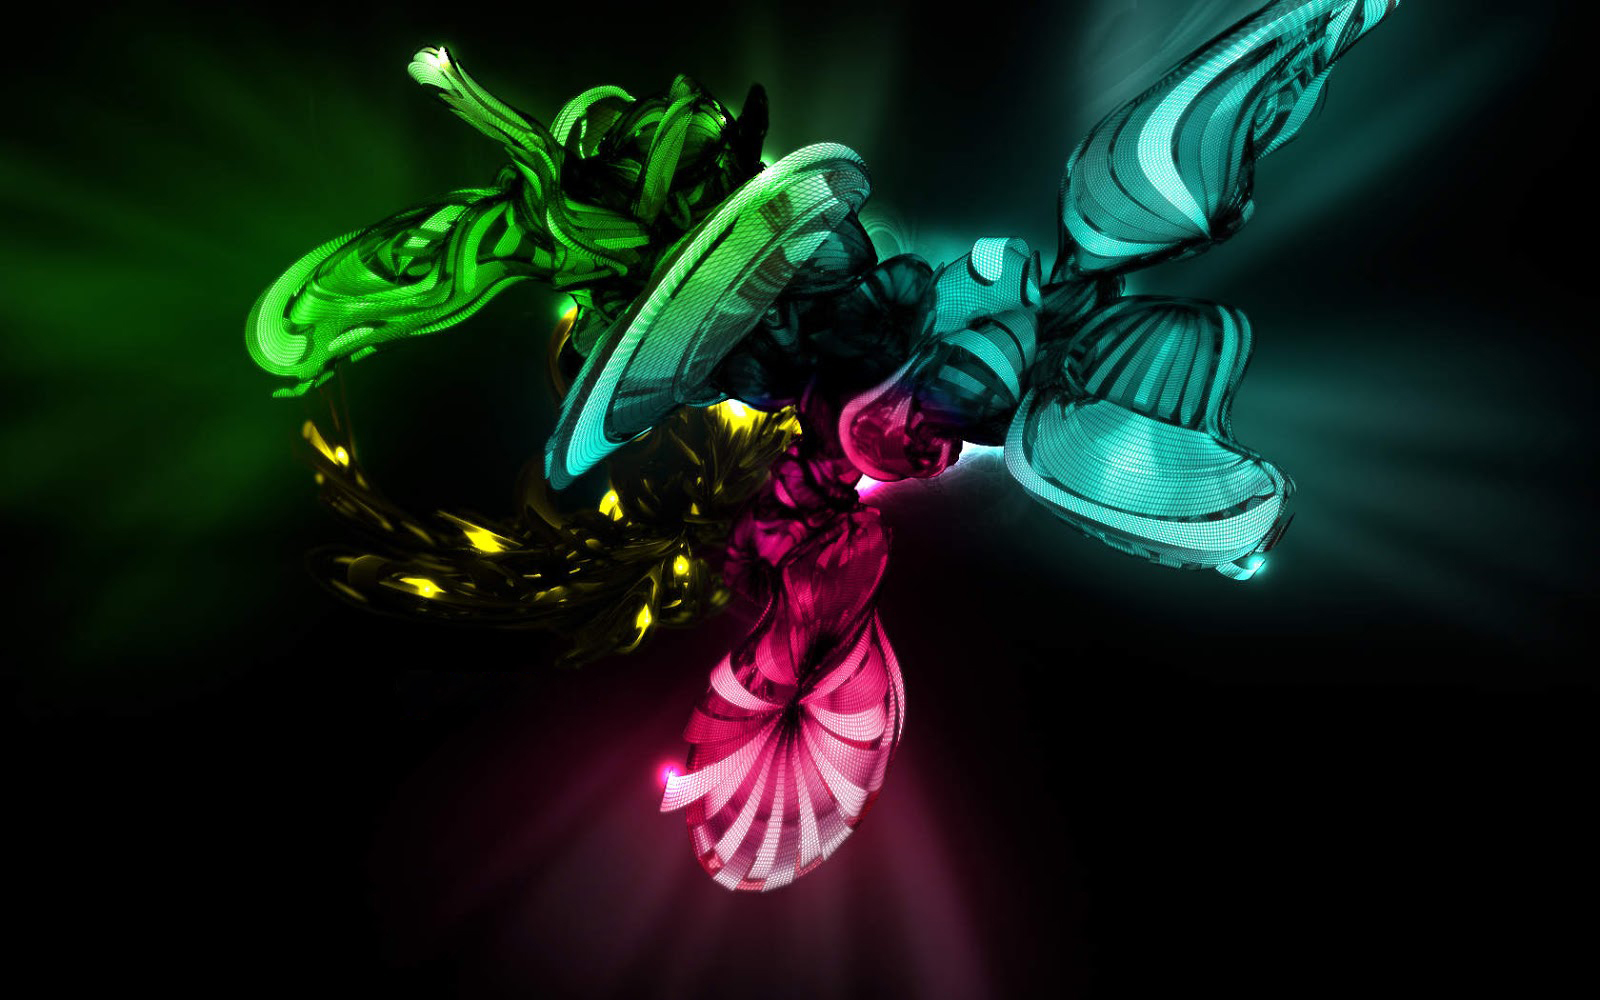 Wallpaper Animation background designs HD Abstract gif 3D Wallpaper 1600x1000